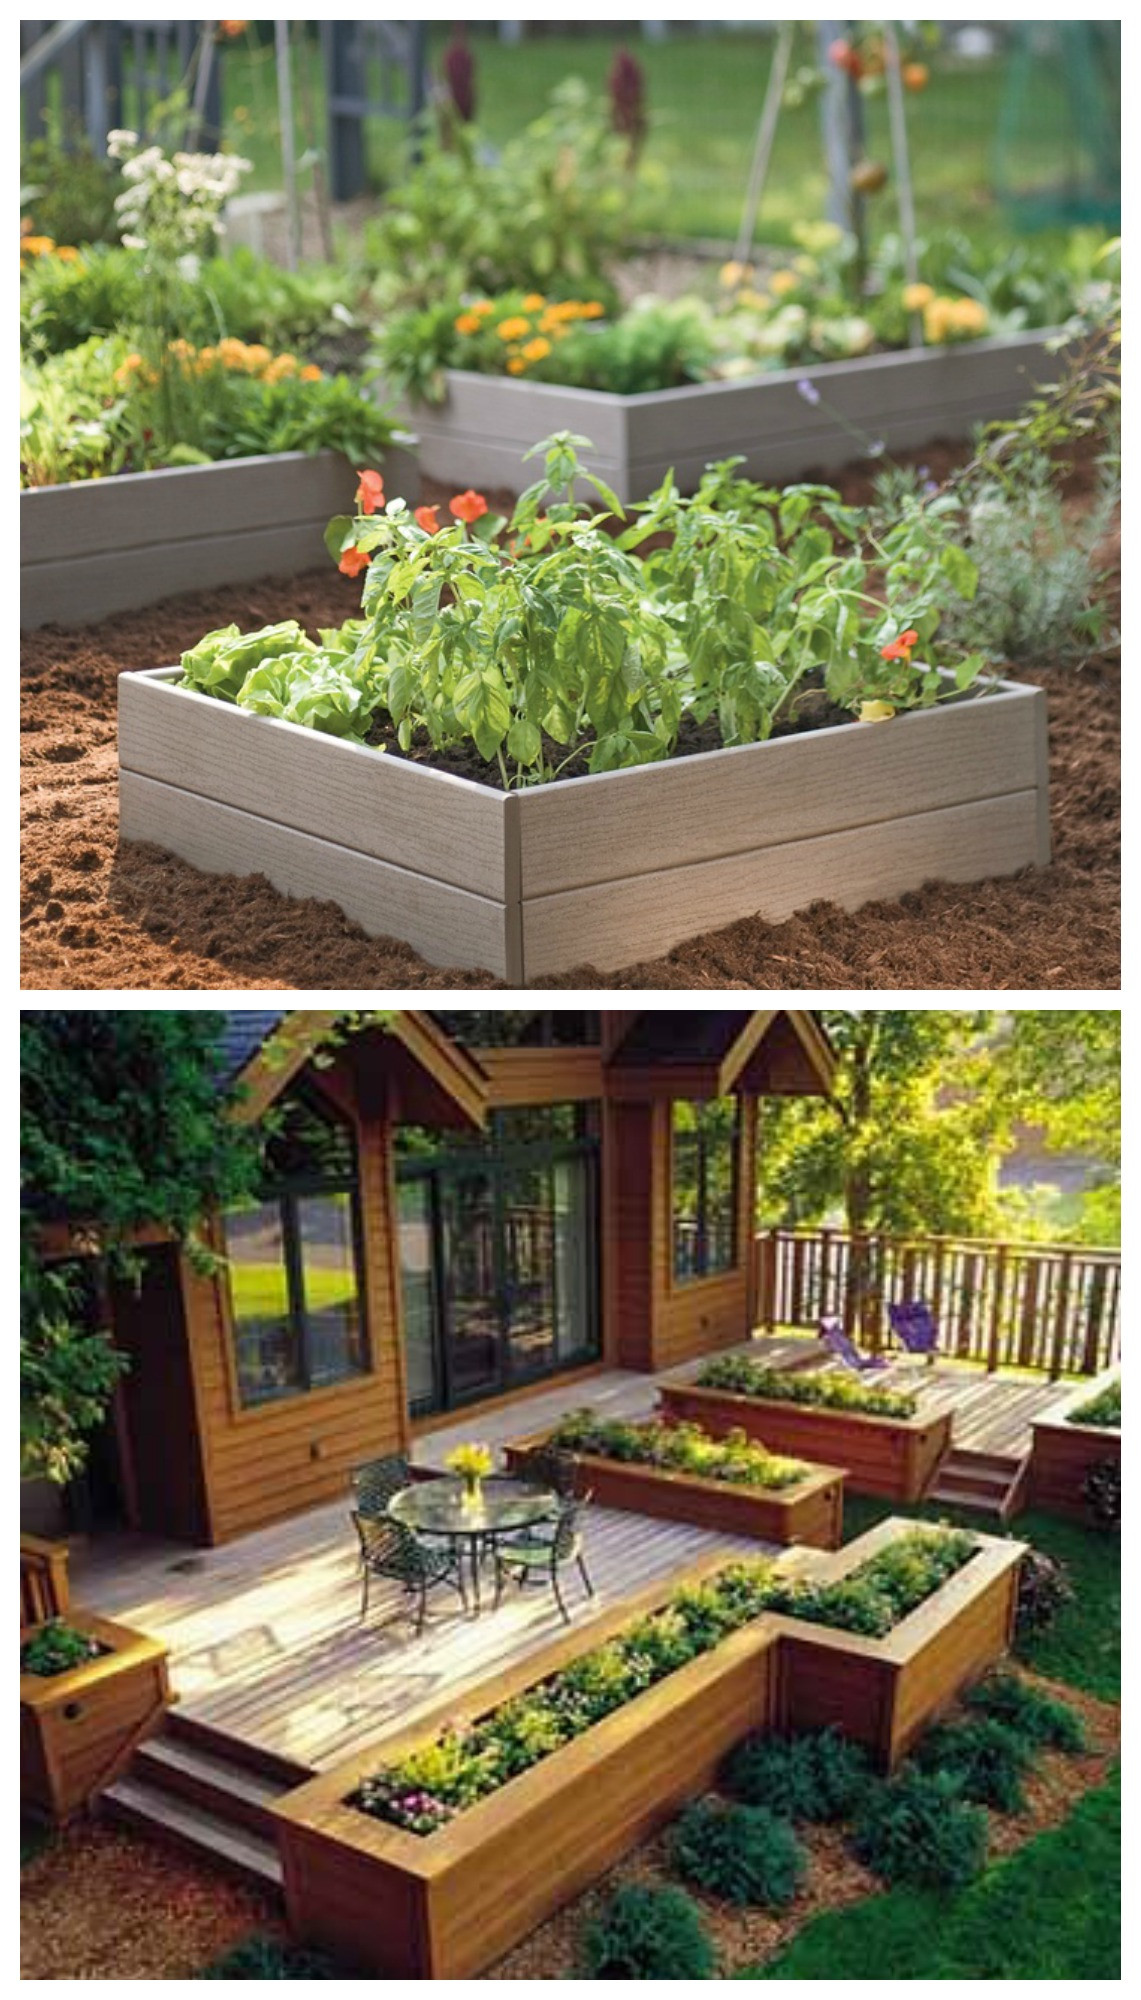 DIY Projects Outdoor  DIY Garden Projects For The Perfect Backyard